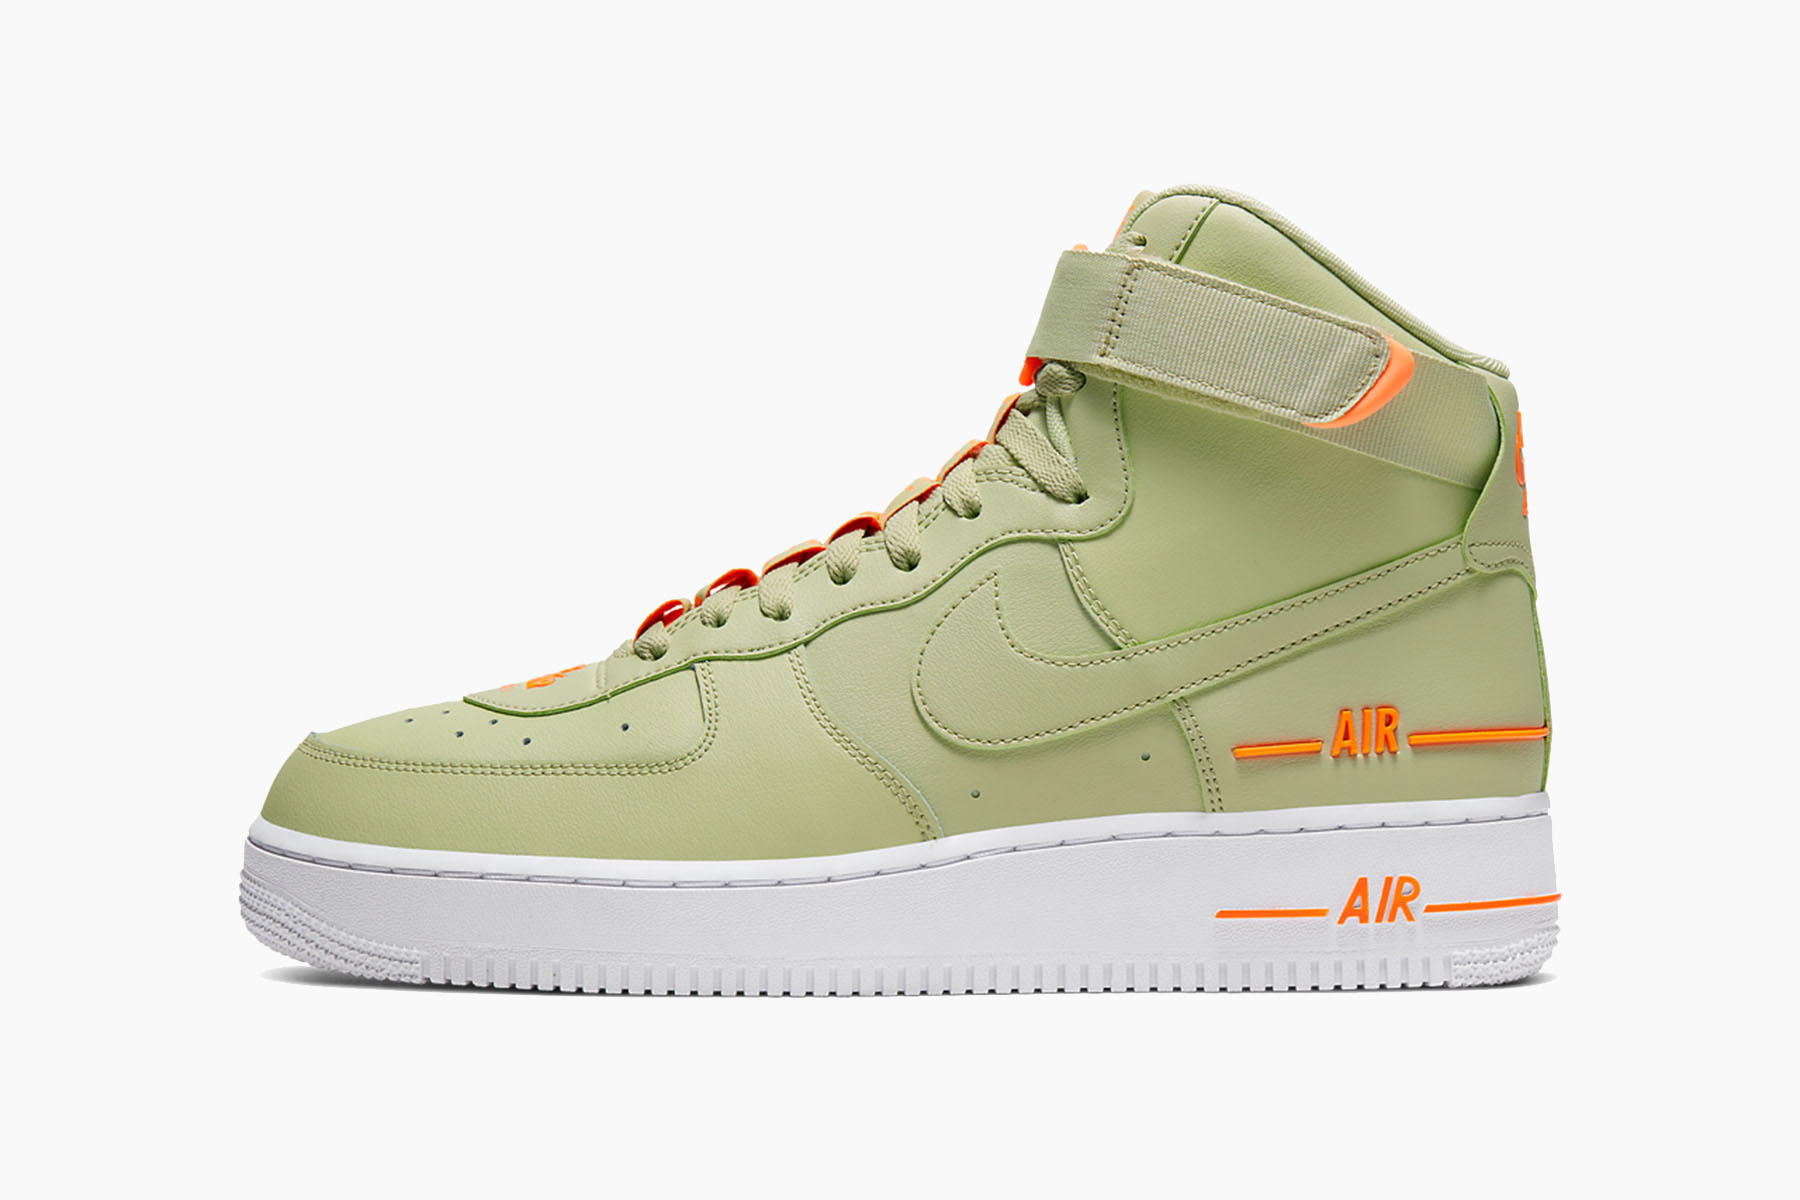 Nike Air Force 1 High '07 LV8 3